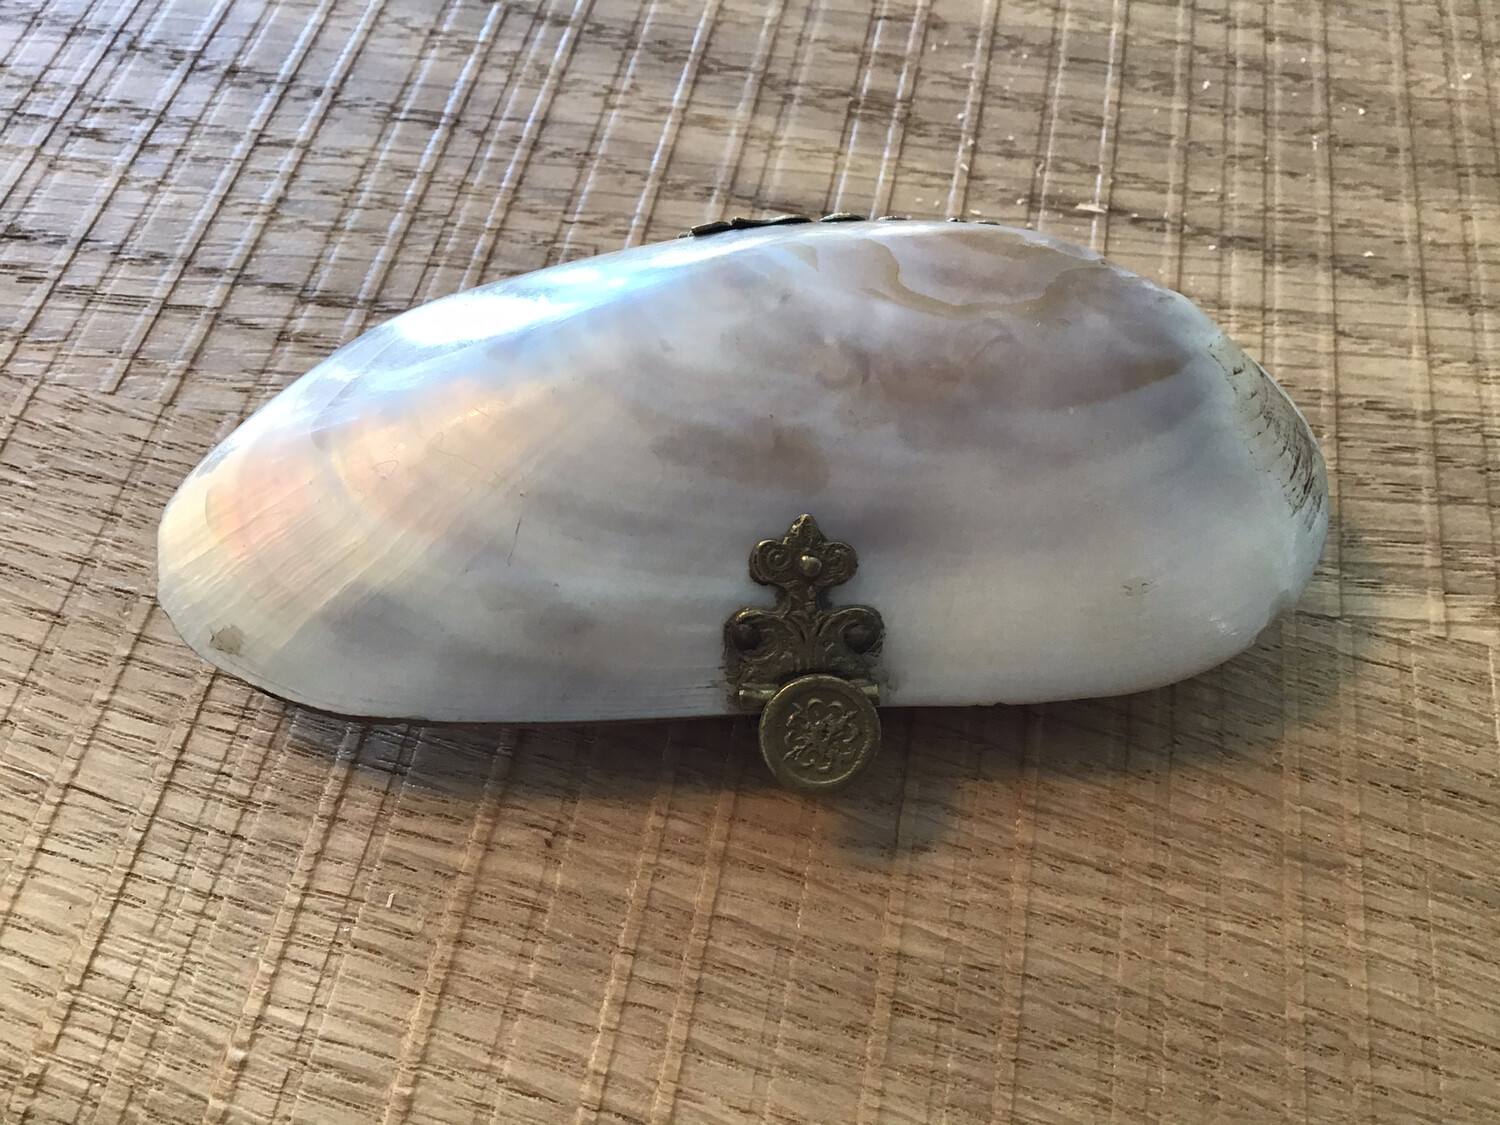 Victorian Mother of Pearl Purse - very unusual and rare